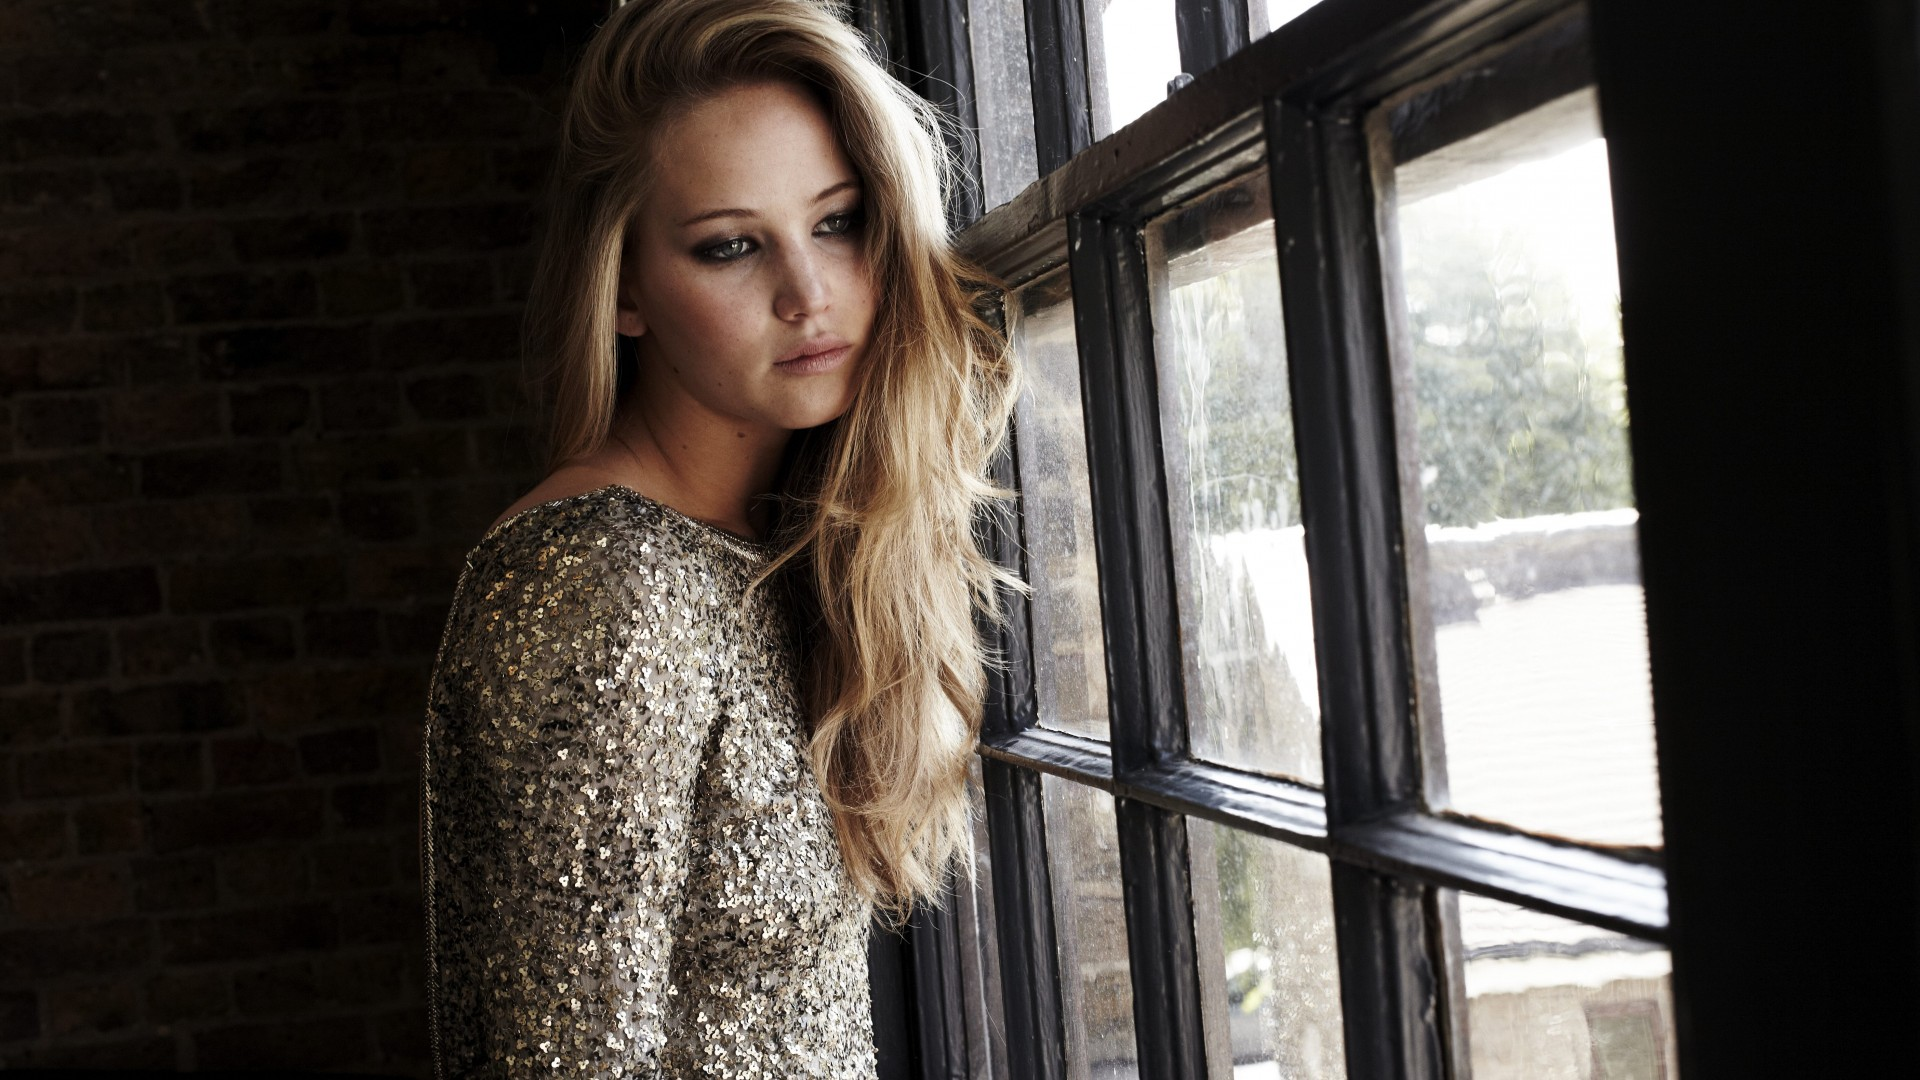 Jennifer Lawrence, Company Town, Poker House, Hunger Games, American Hustle (horizontal)